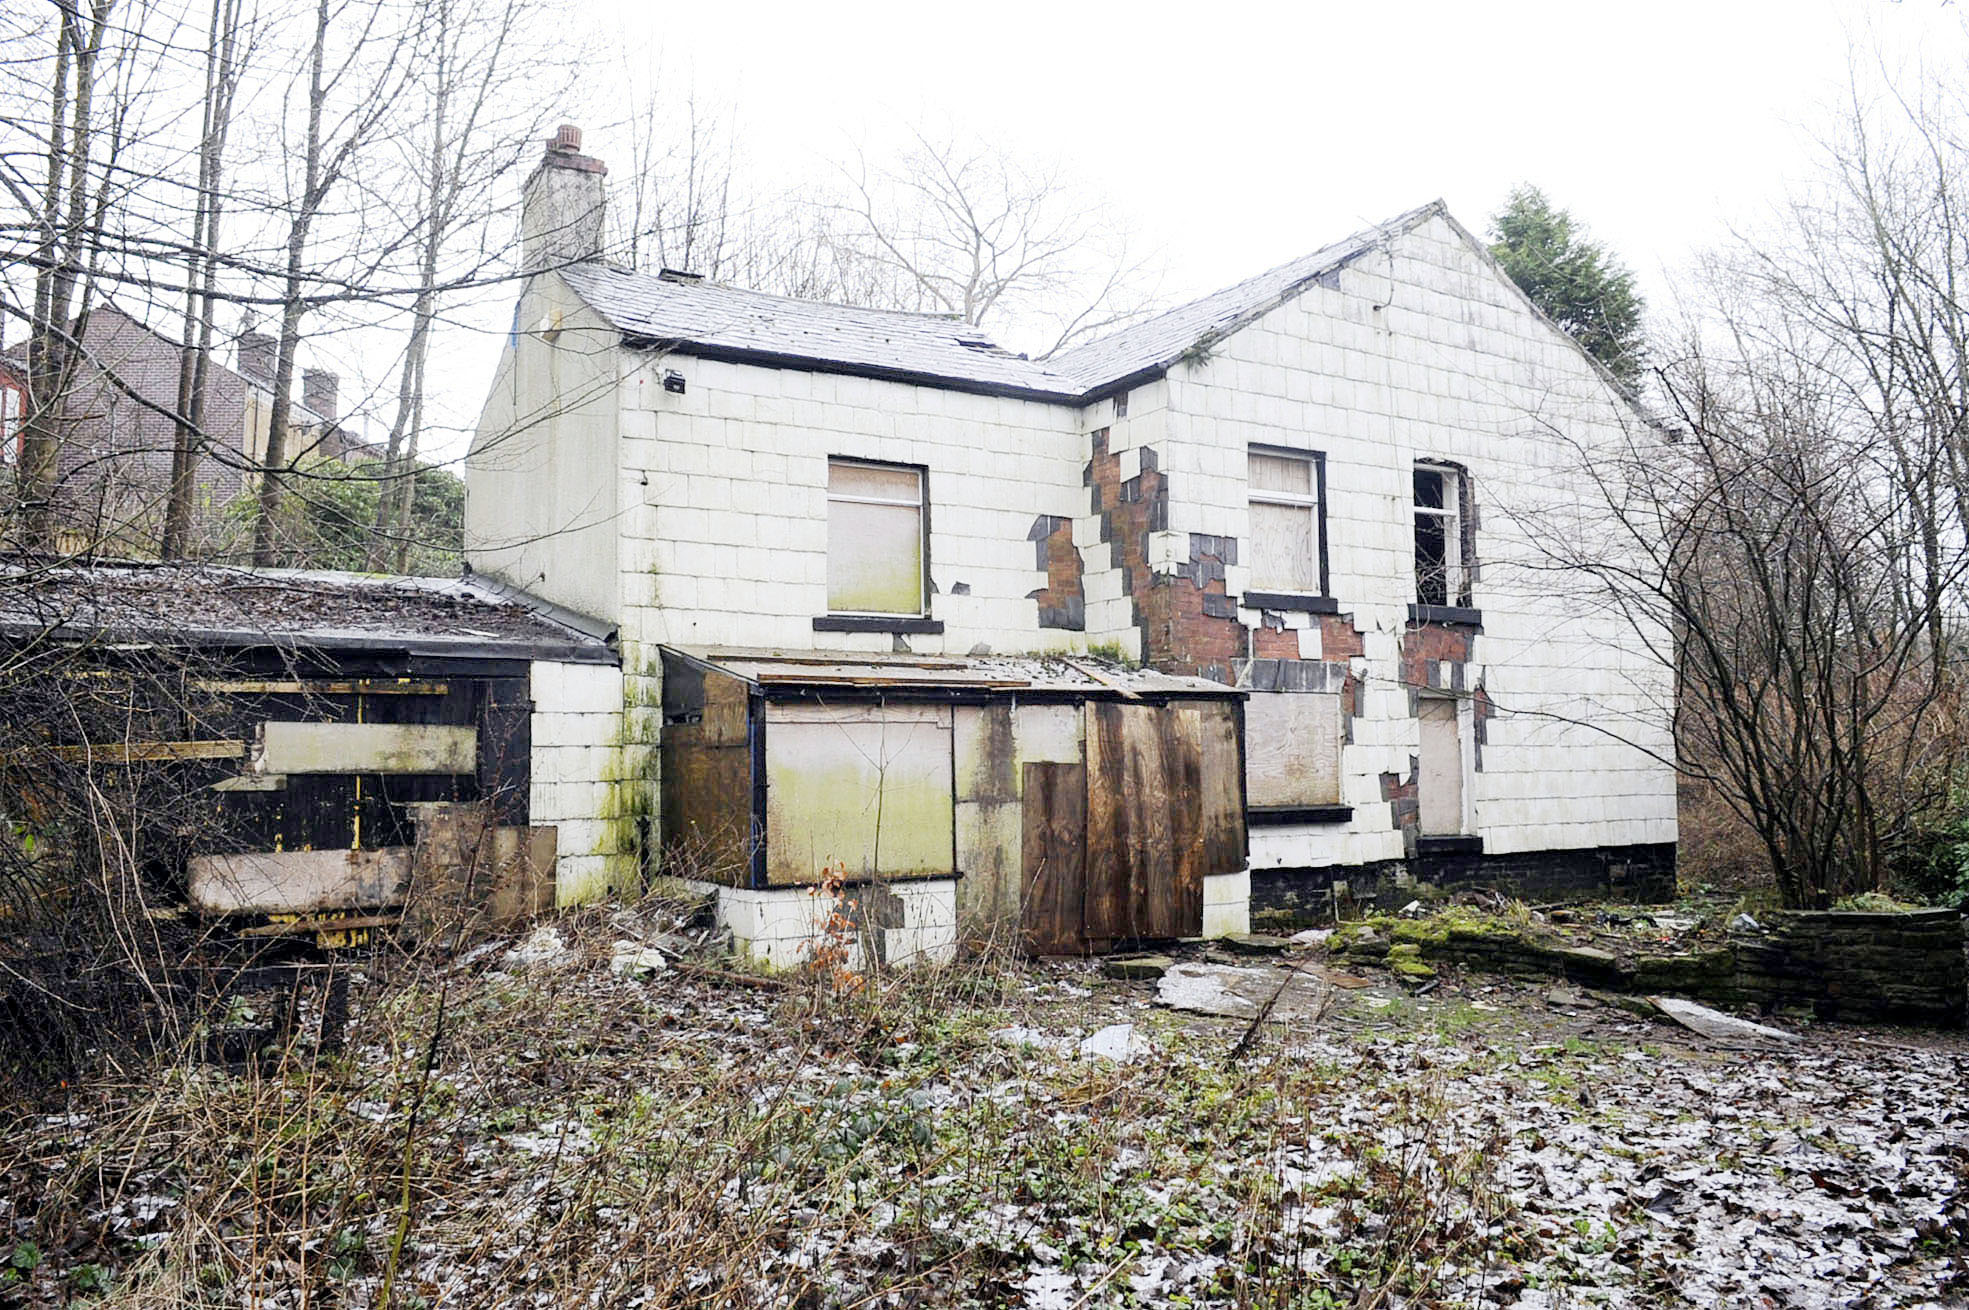 Oliver Cromwell's civil war HQ in Smithills wrecked by vandals